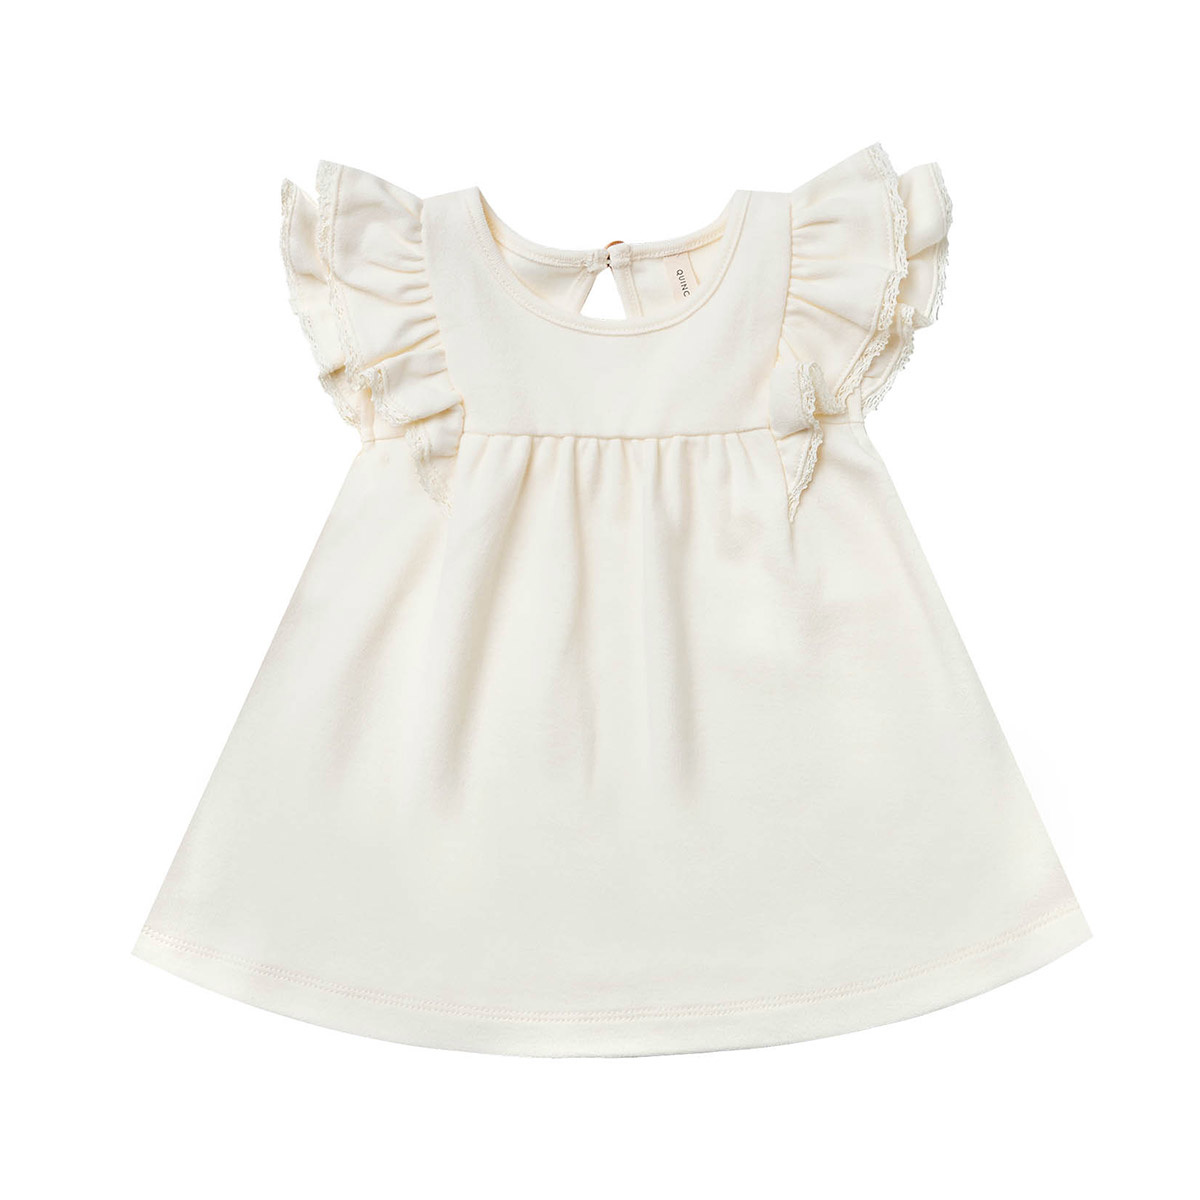 Quincy Mae Quincy Mae Organic Cotton Flutter Dress - Ivory